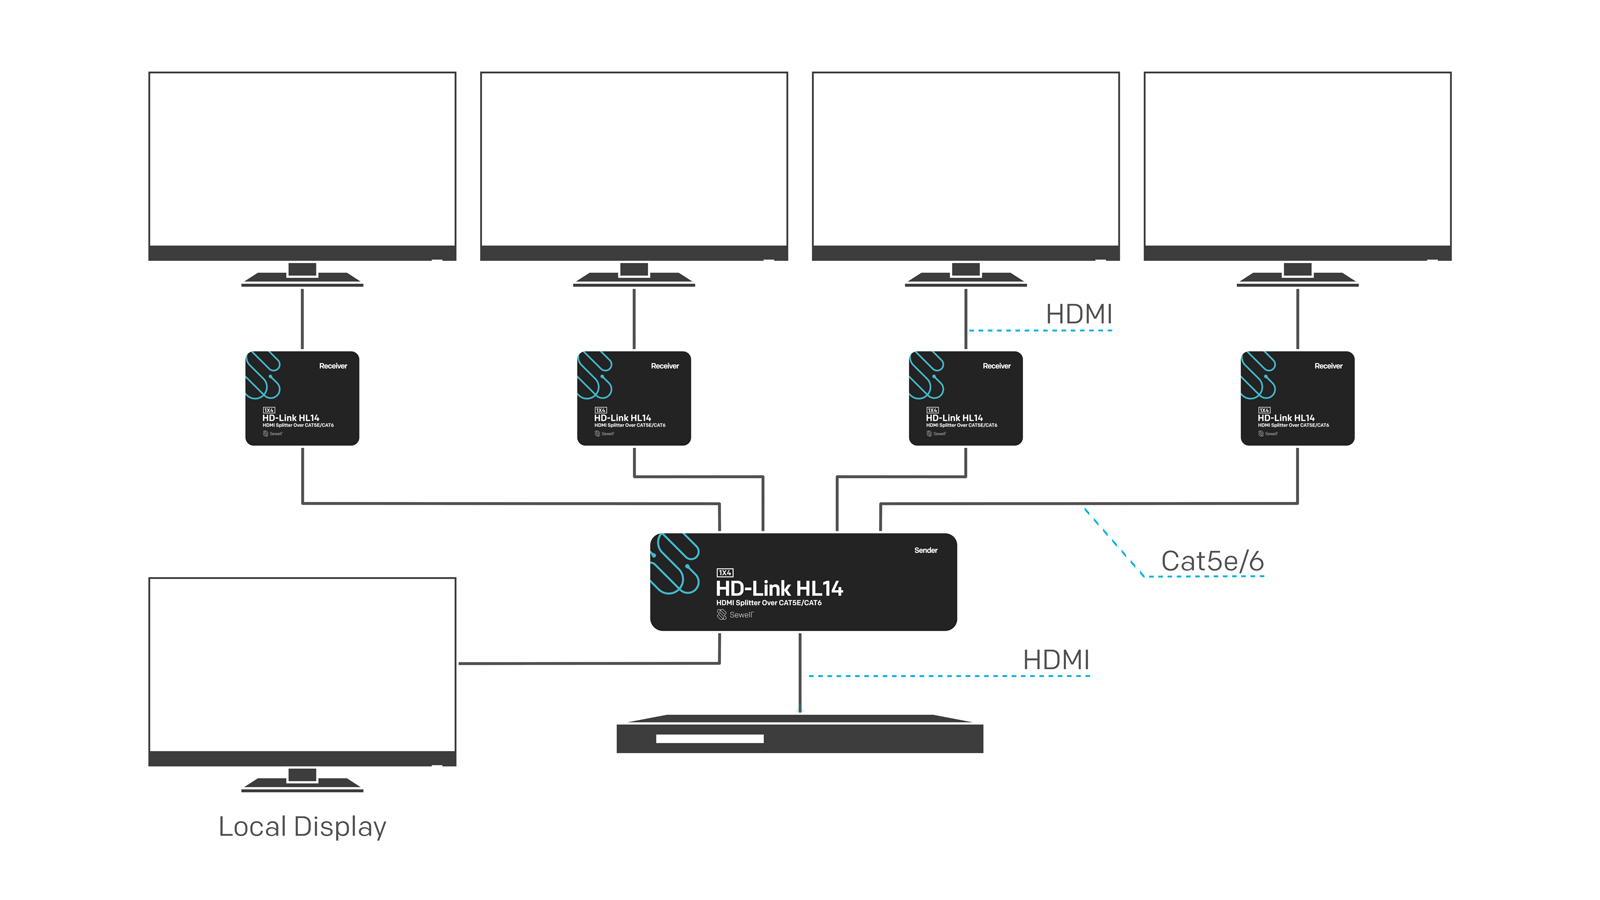 hl14 connection diagram